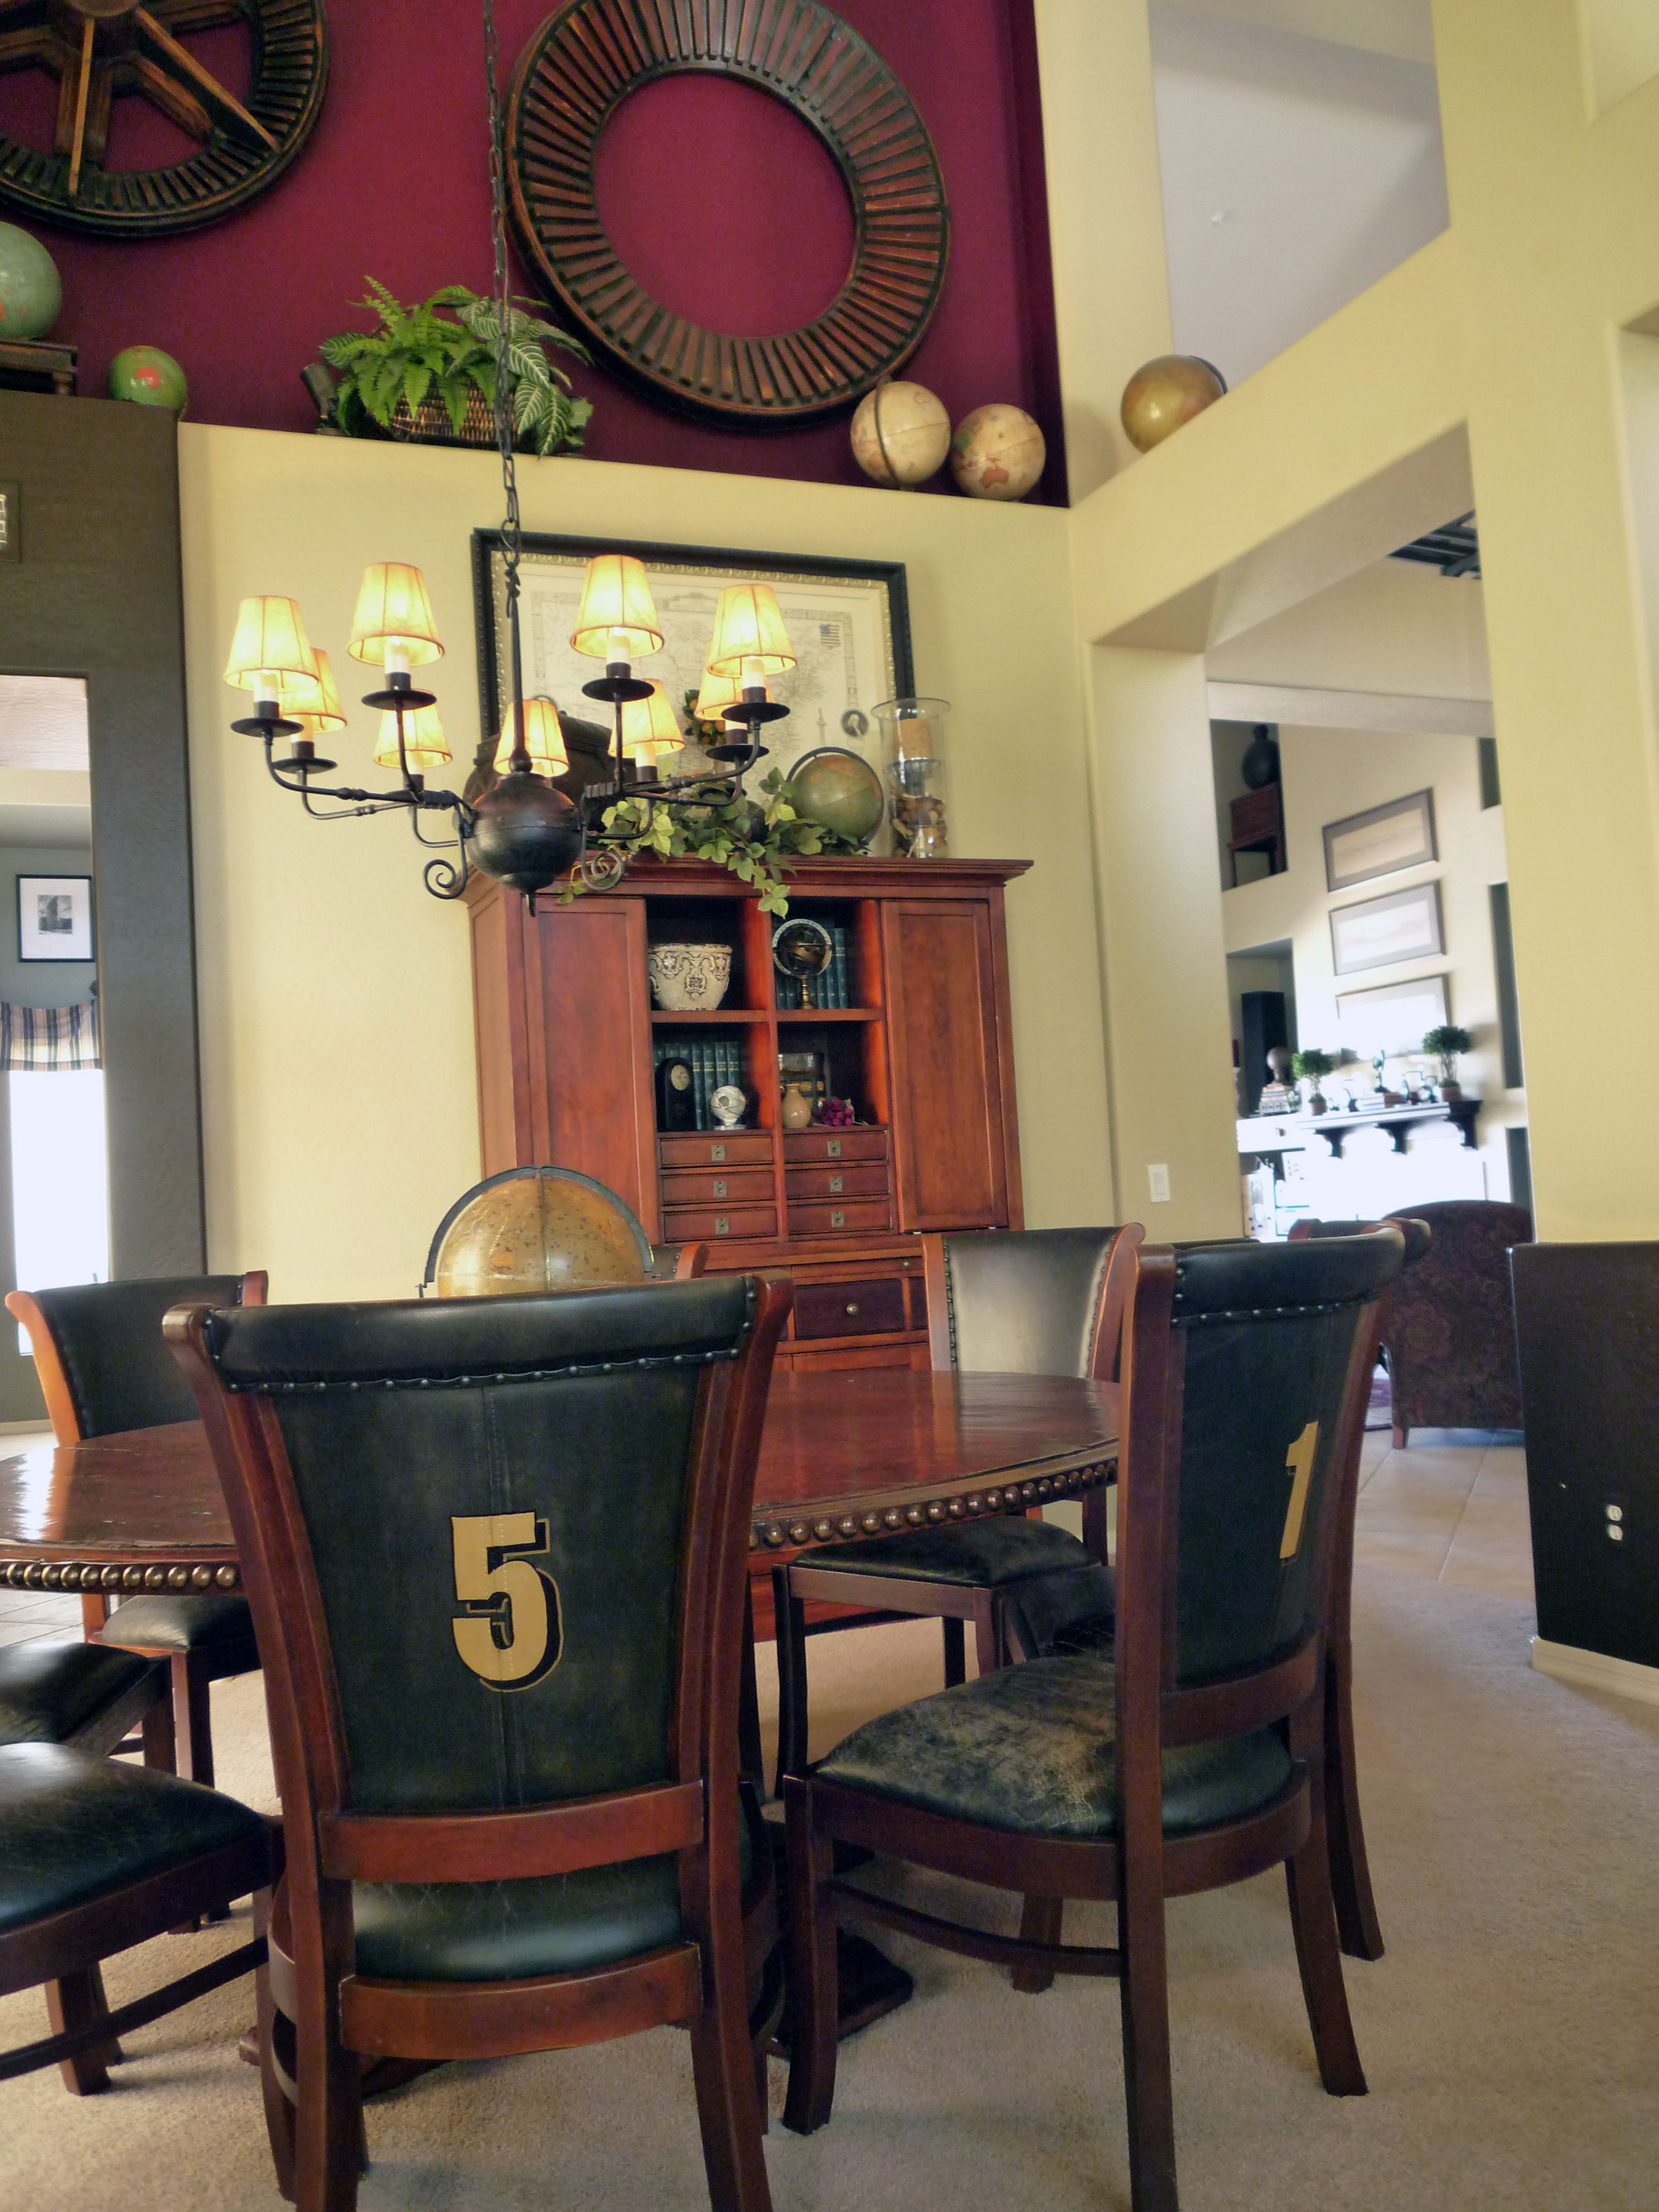 Dining Room Interior Design By Meritt Larson Designs, Scottsdale, AZ